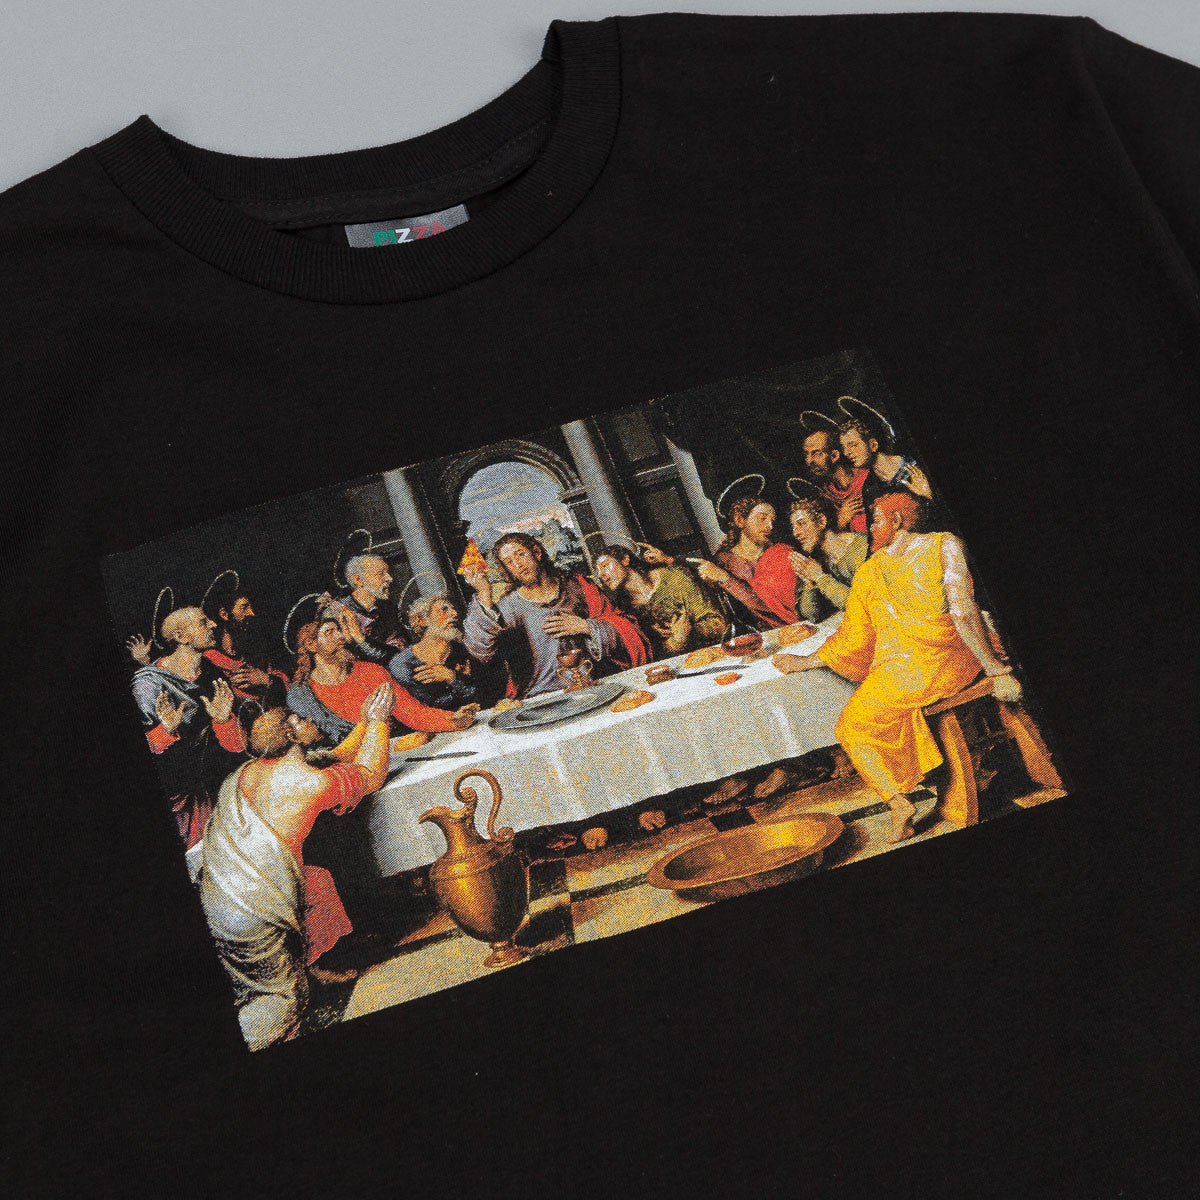 Pizza Skateboards Last Supper T Shirt - Black